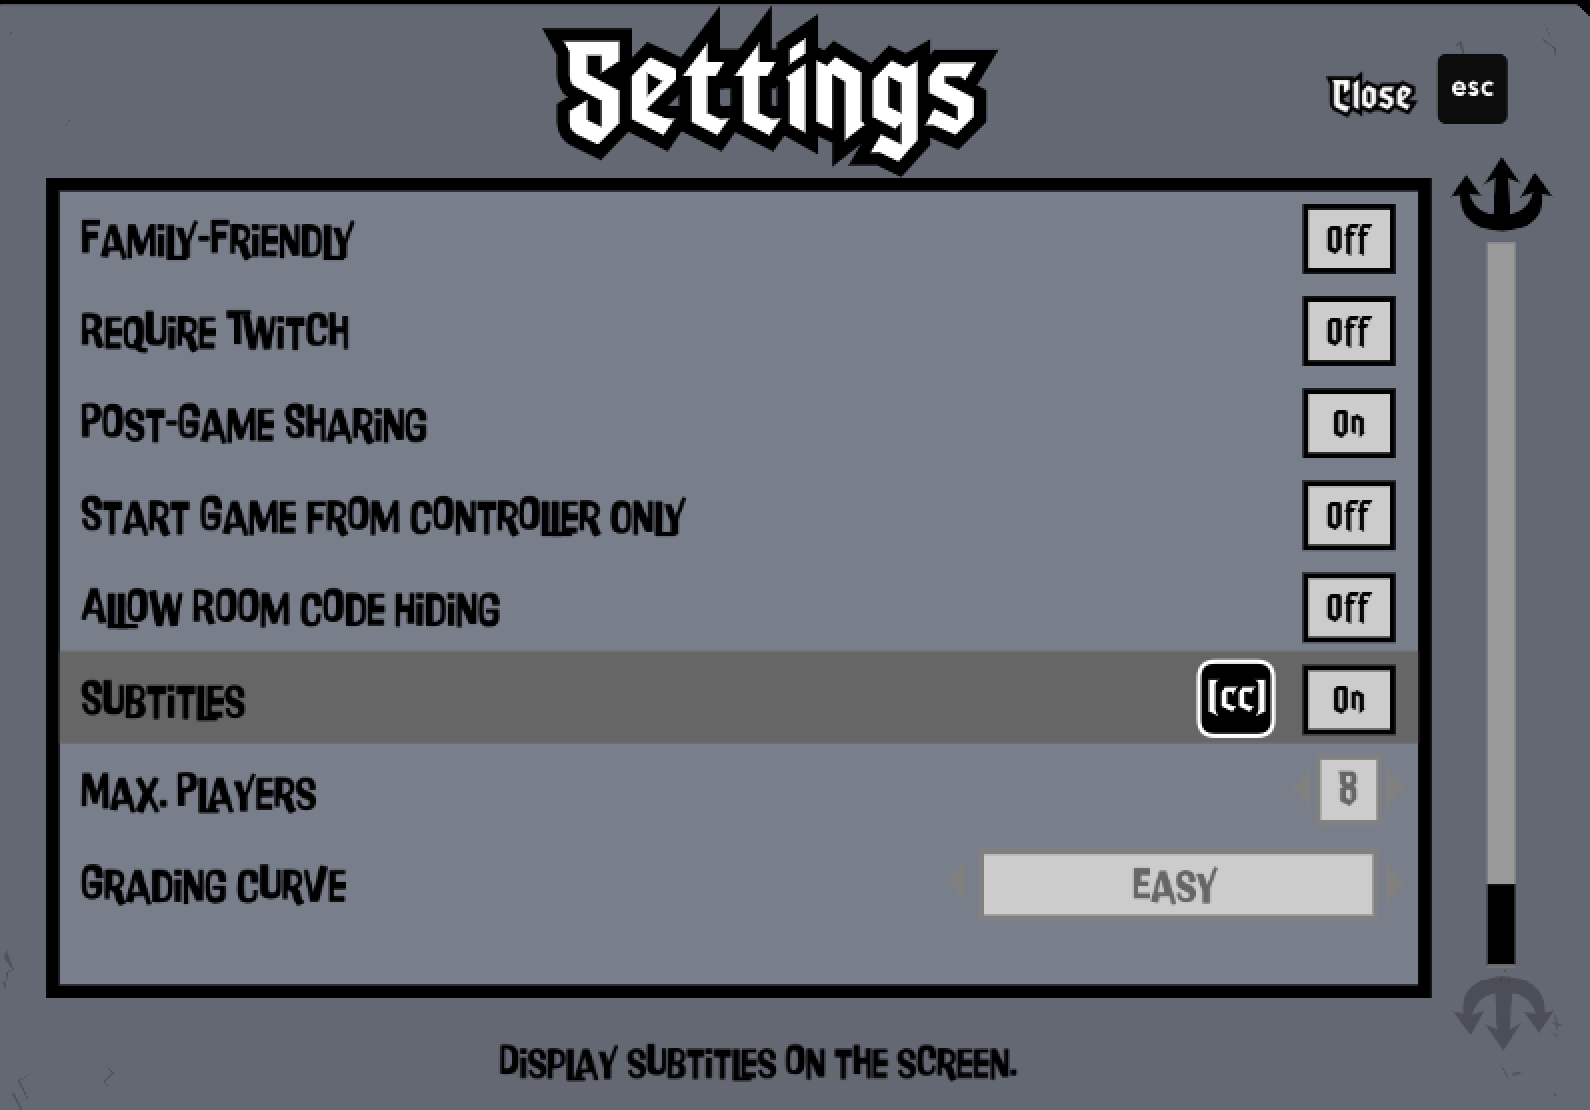 """Screencap of the Settings menu from The Devils and the Details. Subtitles are the 6th option down and are toggled to """"on""""."""